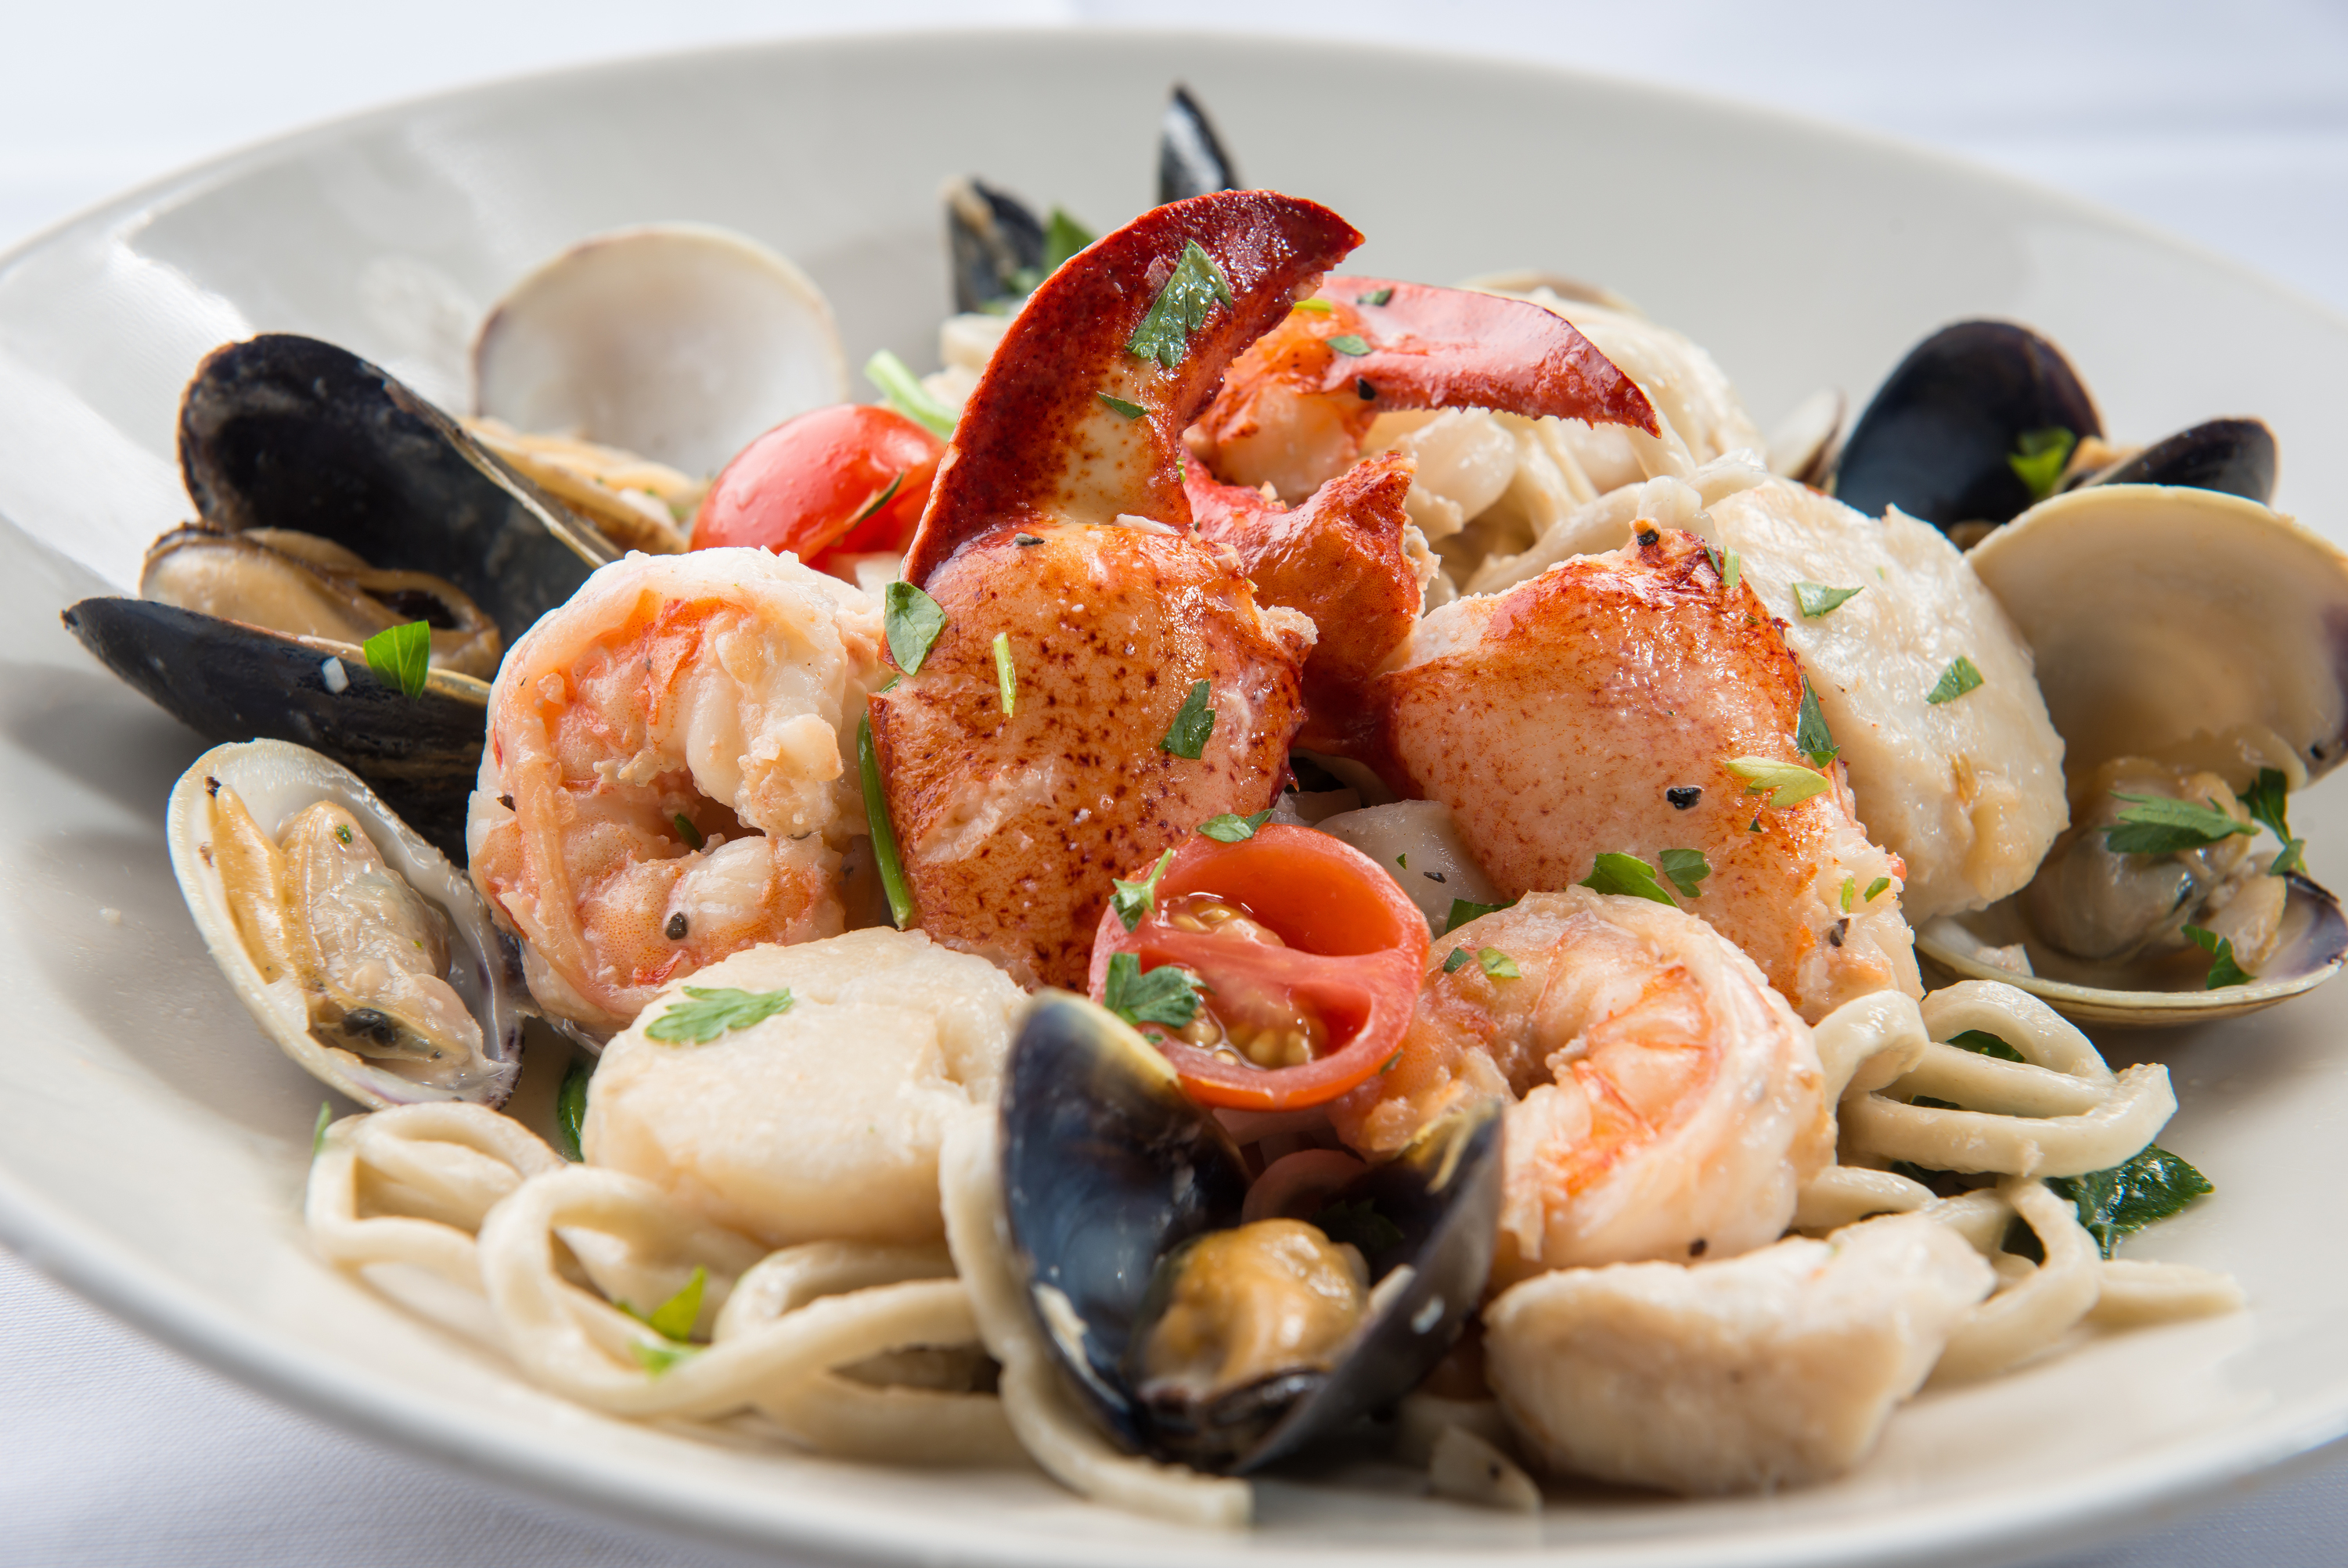 Bowl of pasta with seafood on top